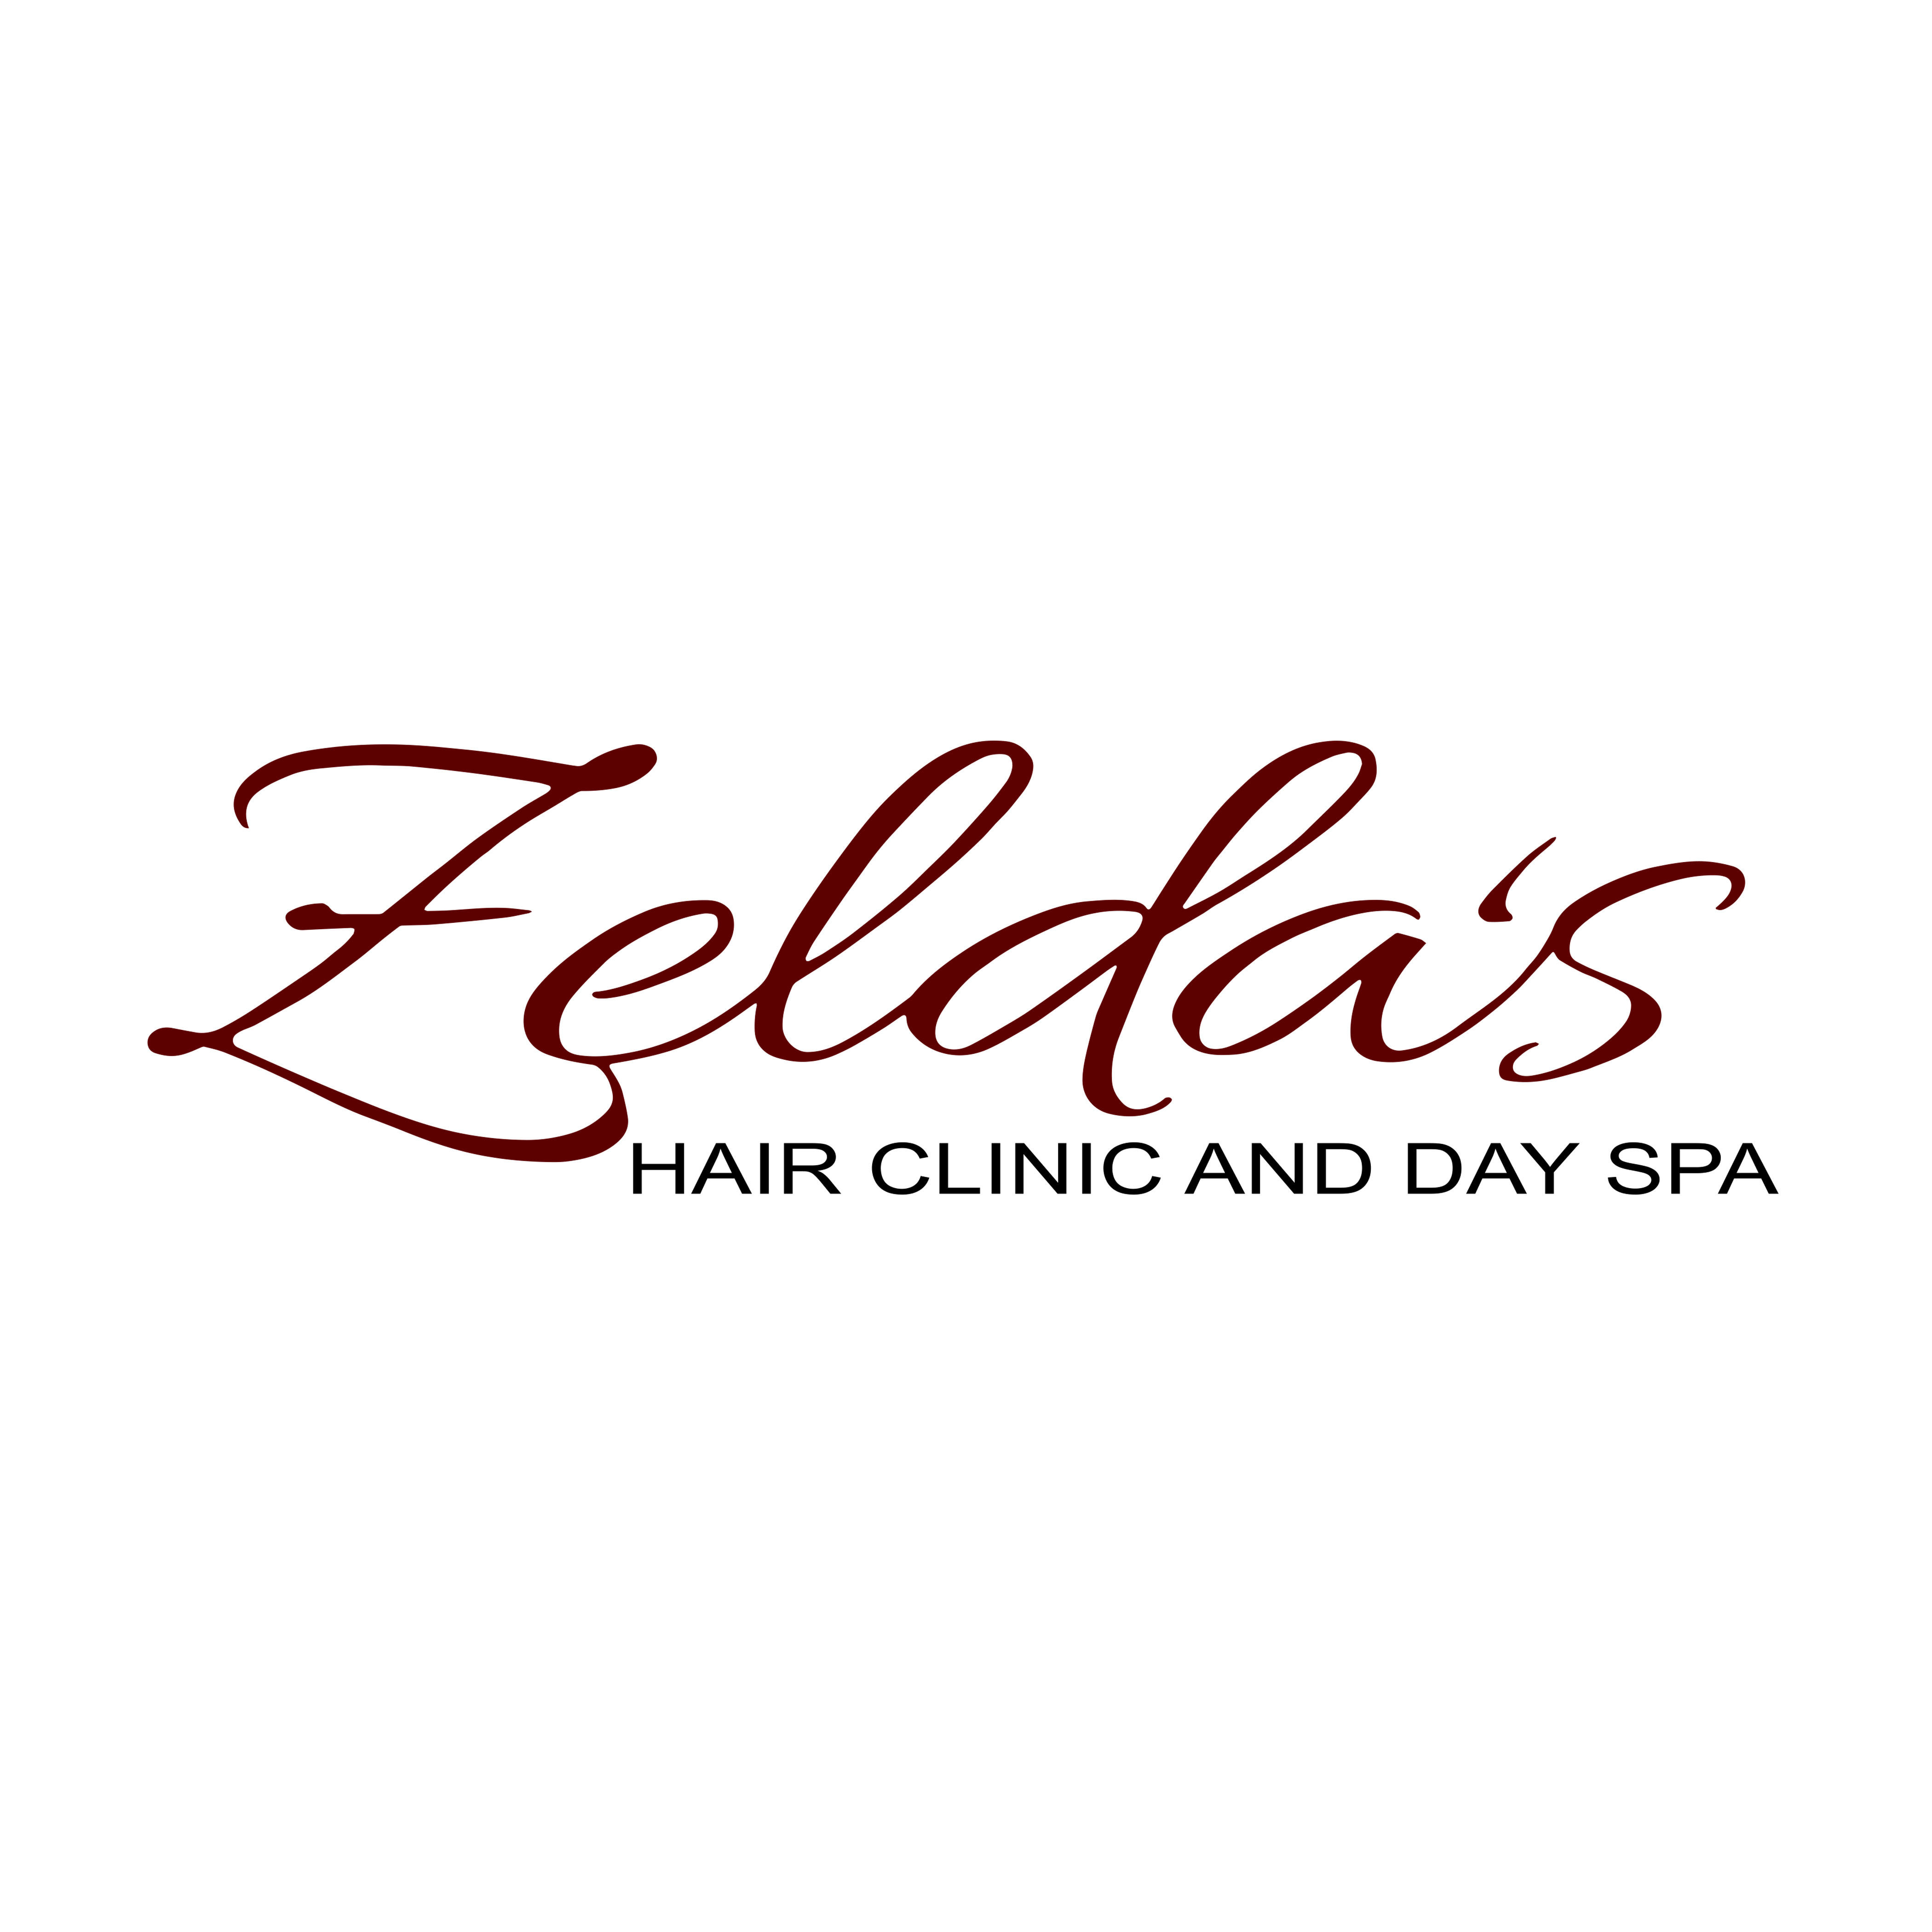 Zelda's Hair Clinic and Day Spa - Wilmington, DE - Beauty Salons & Hair Care